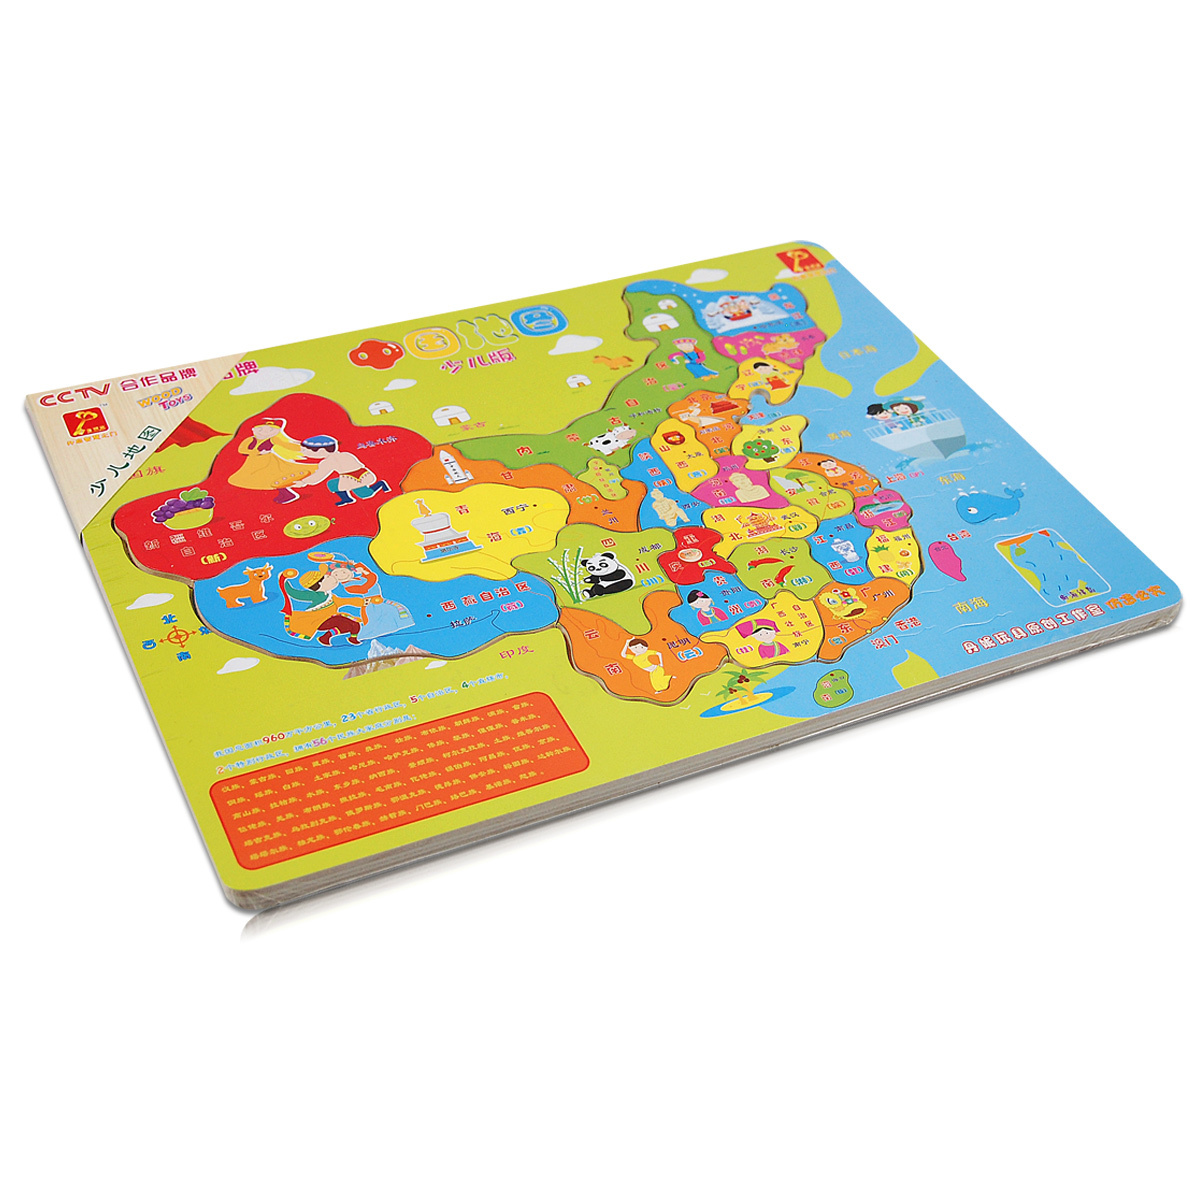 Dannie toys children's map plate puzzle baby map thickening edition(China (Mainland))